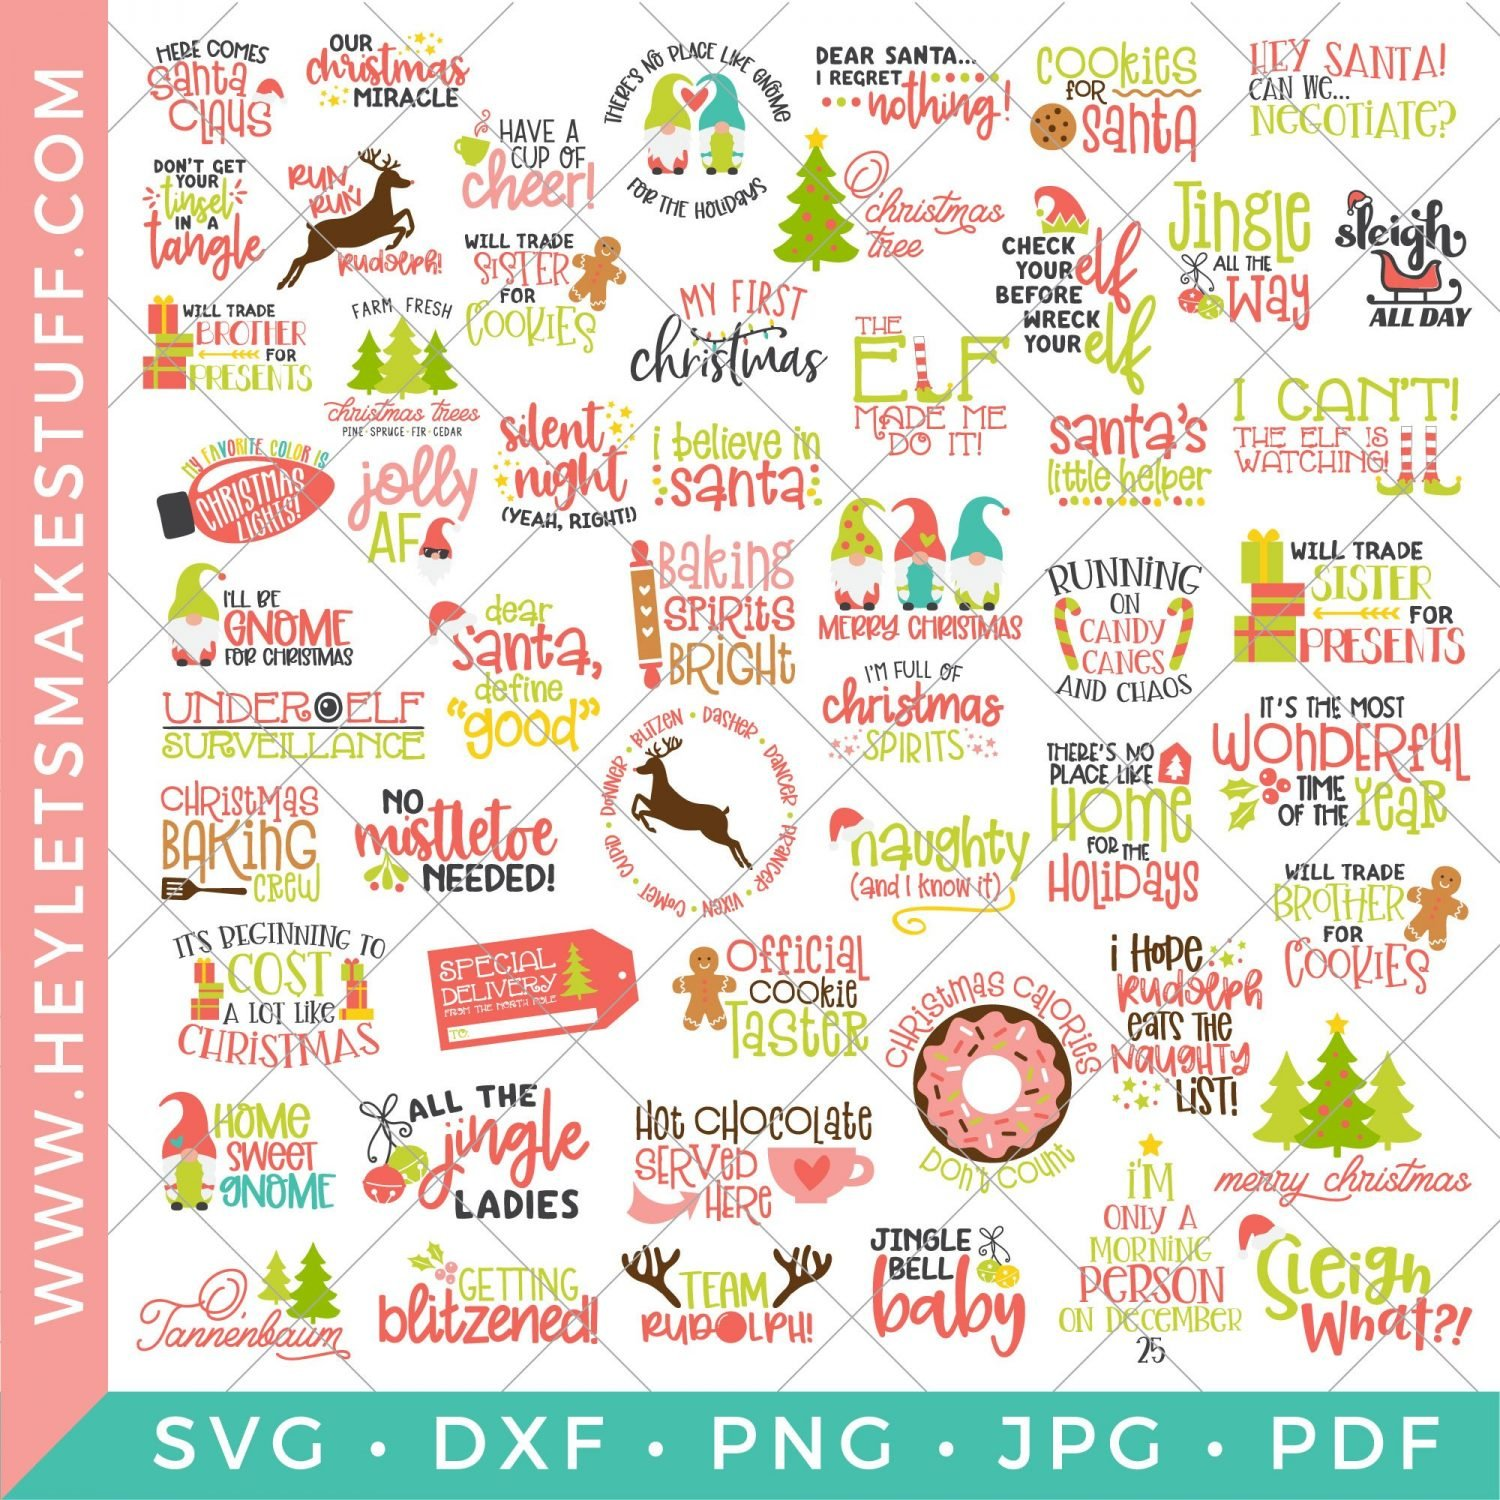 All of the SVGs included in the BIG Christmas SVG Bundle